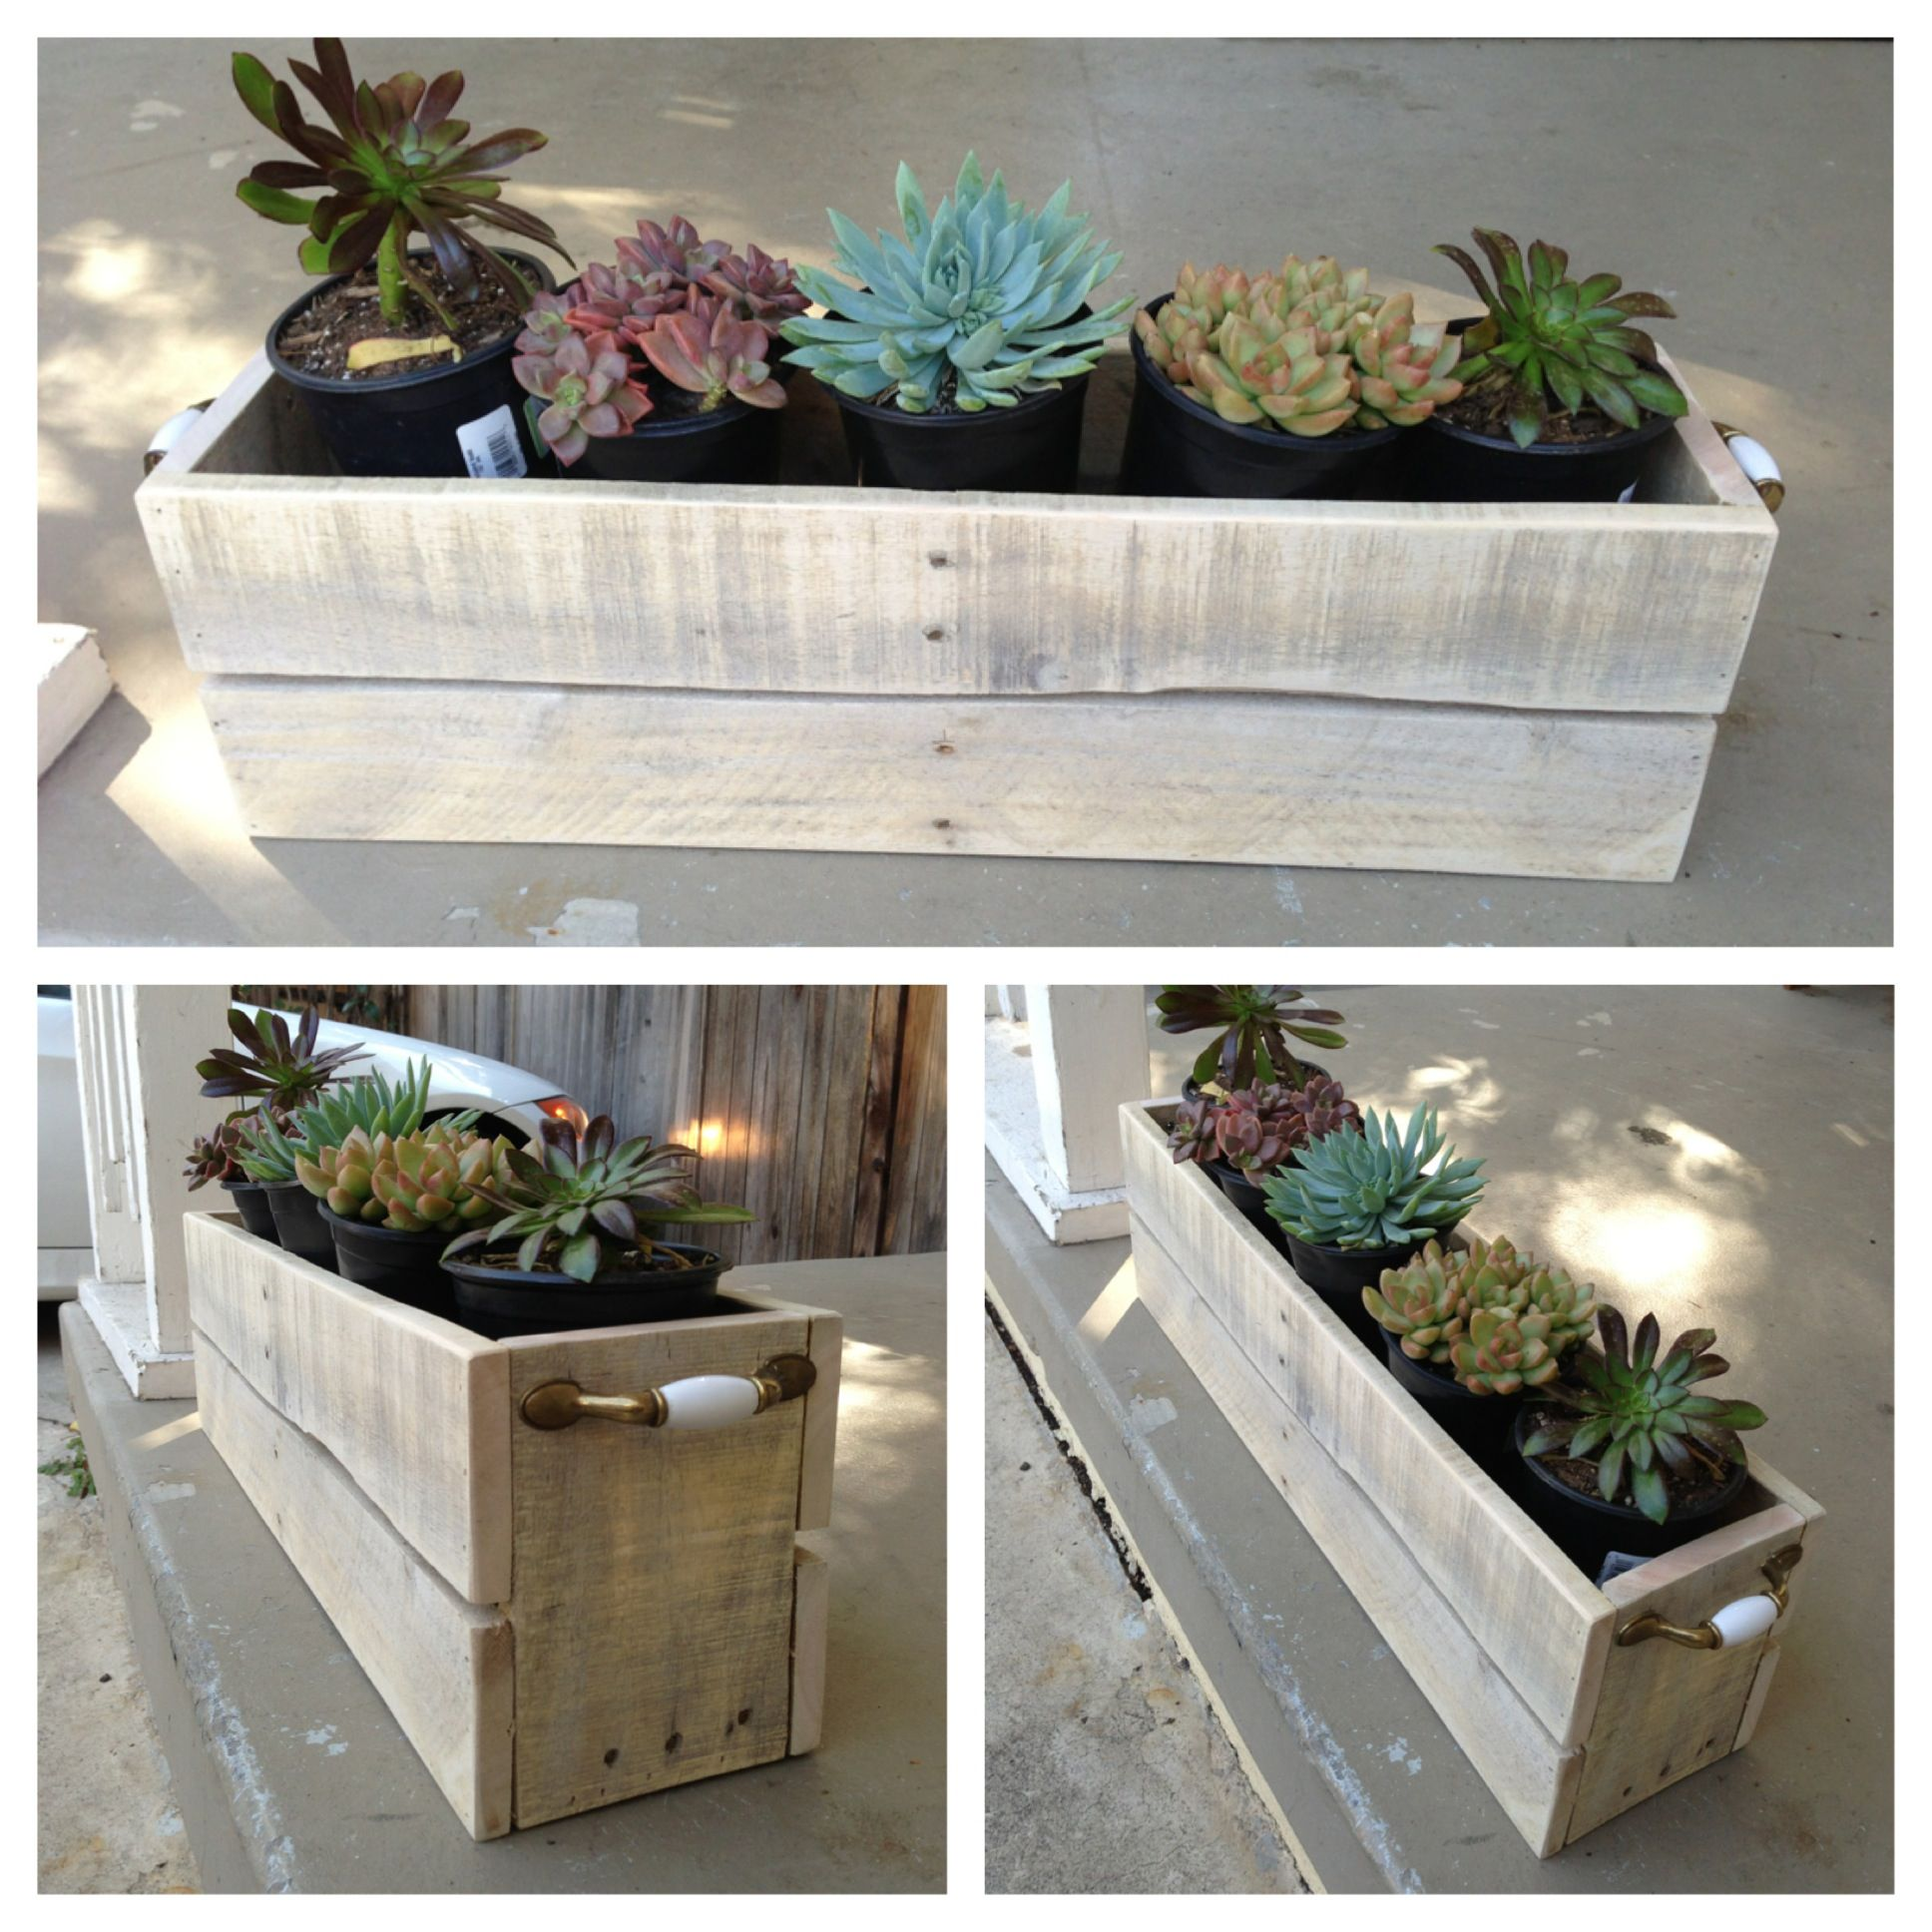 Diy Planter Box From Pallets Planter 39s Box Made From Pallet Wood Made By Yours Truly